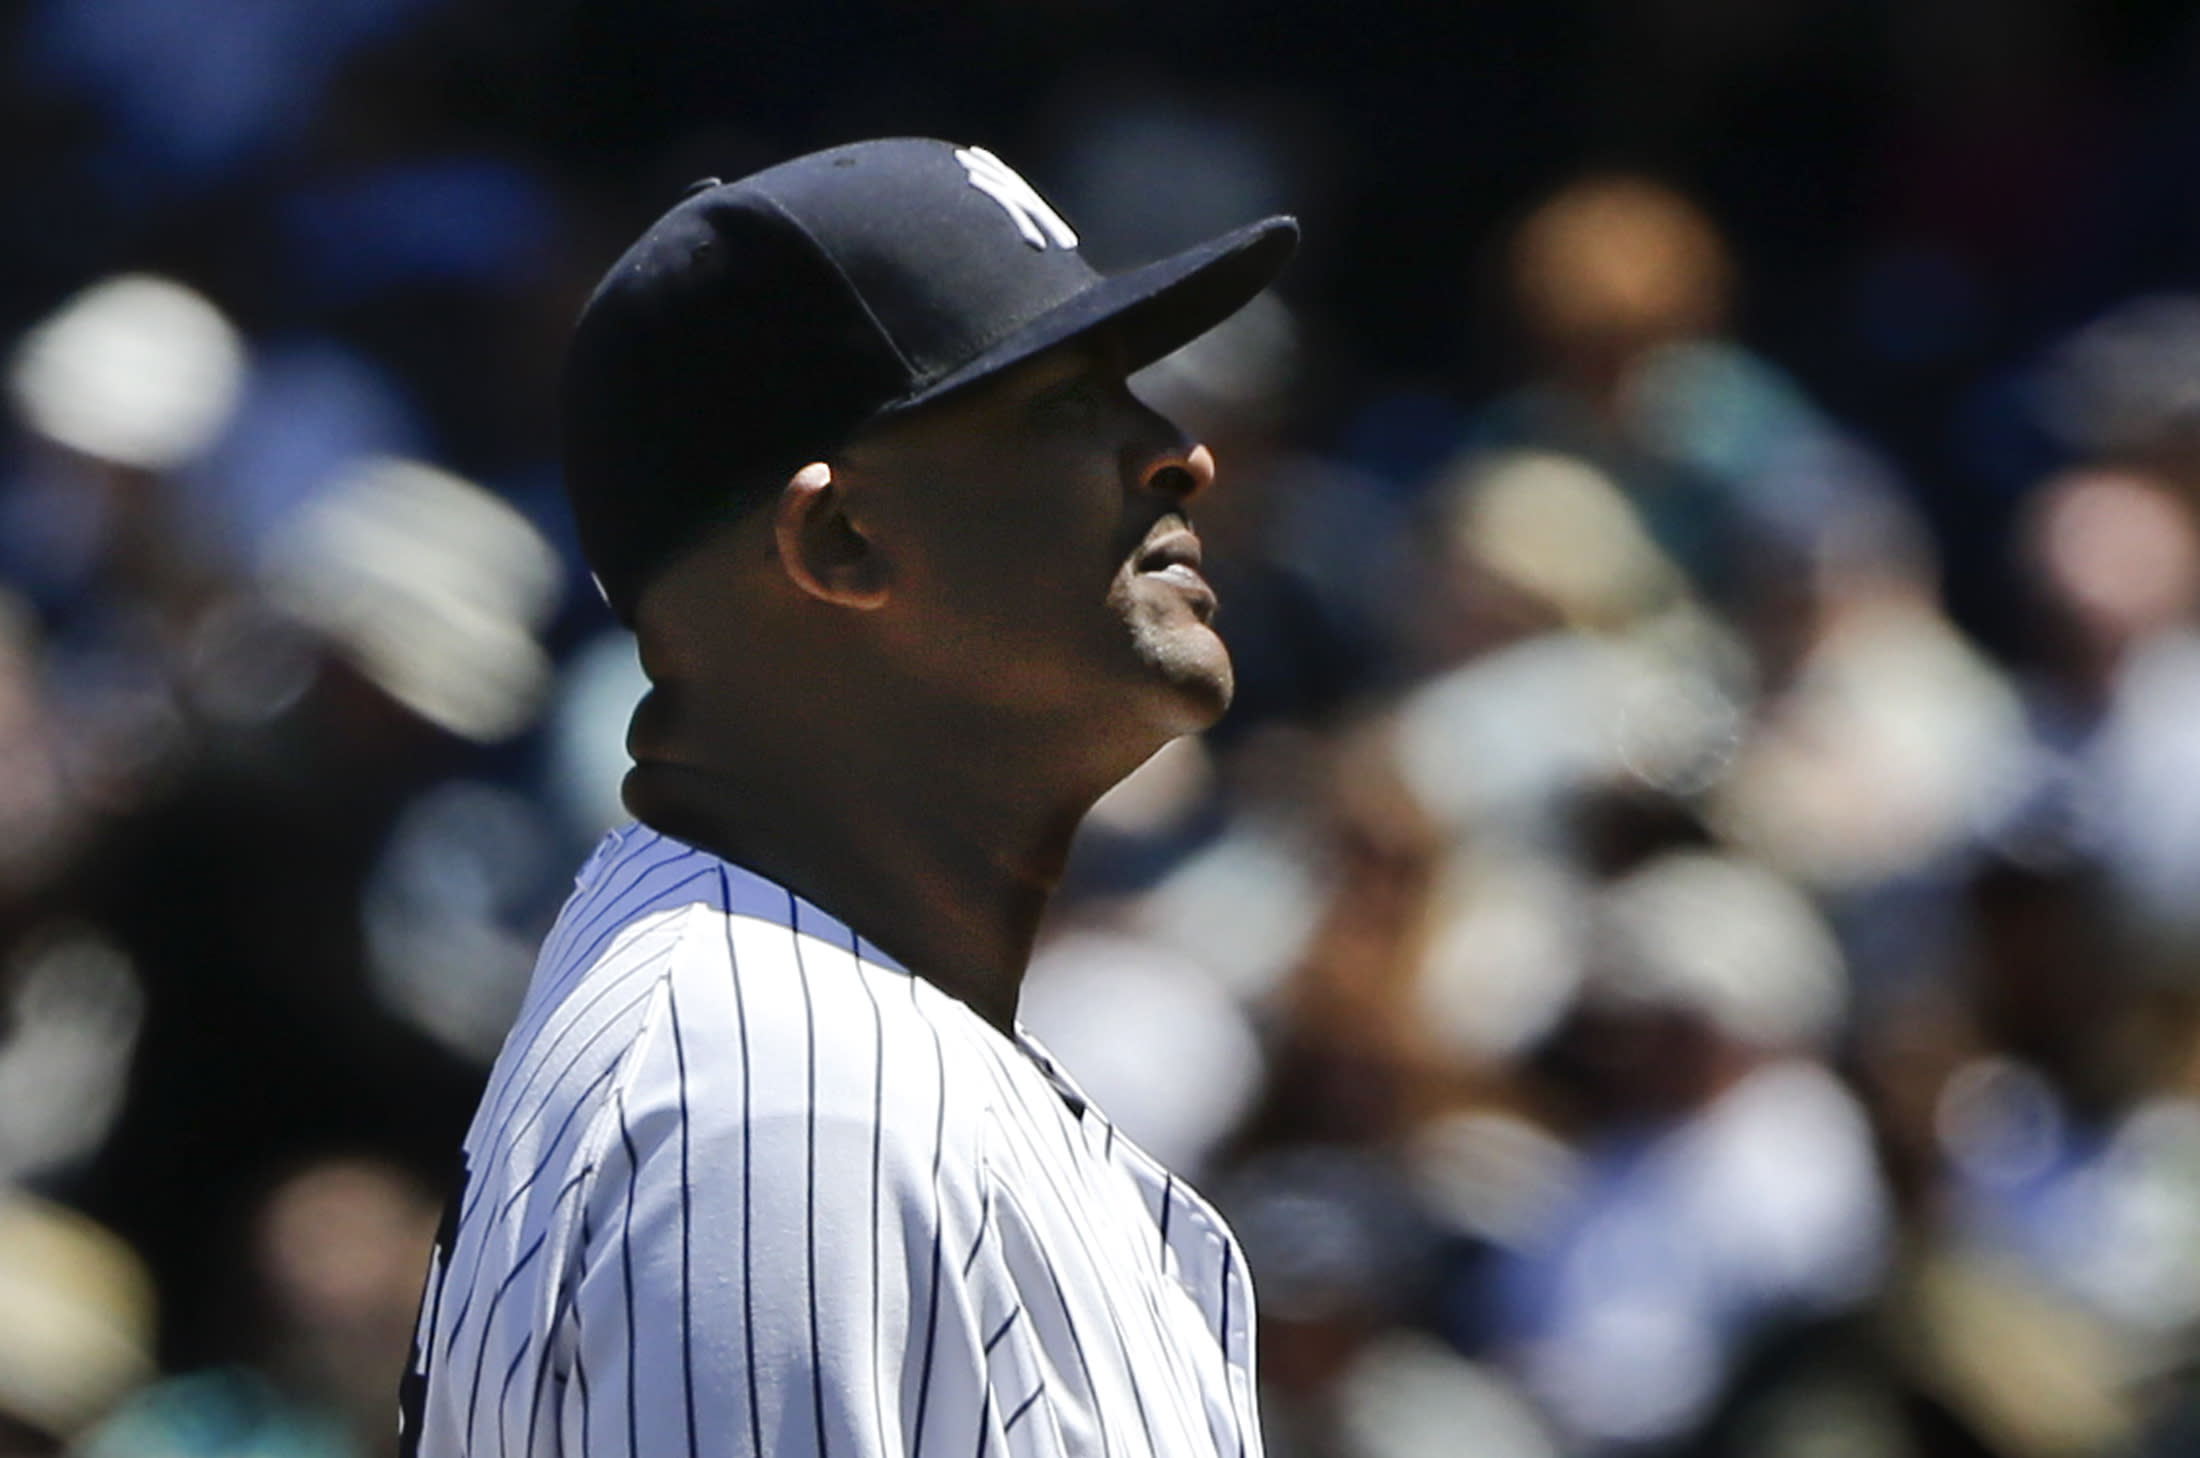 Yankees lose for 9th time in 10 games, 15-4 to Rangers